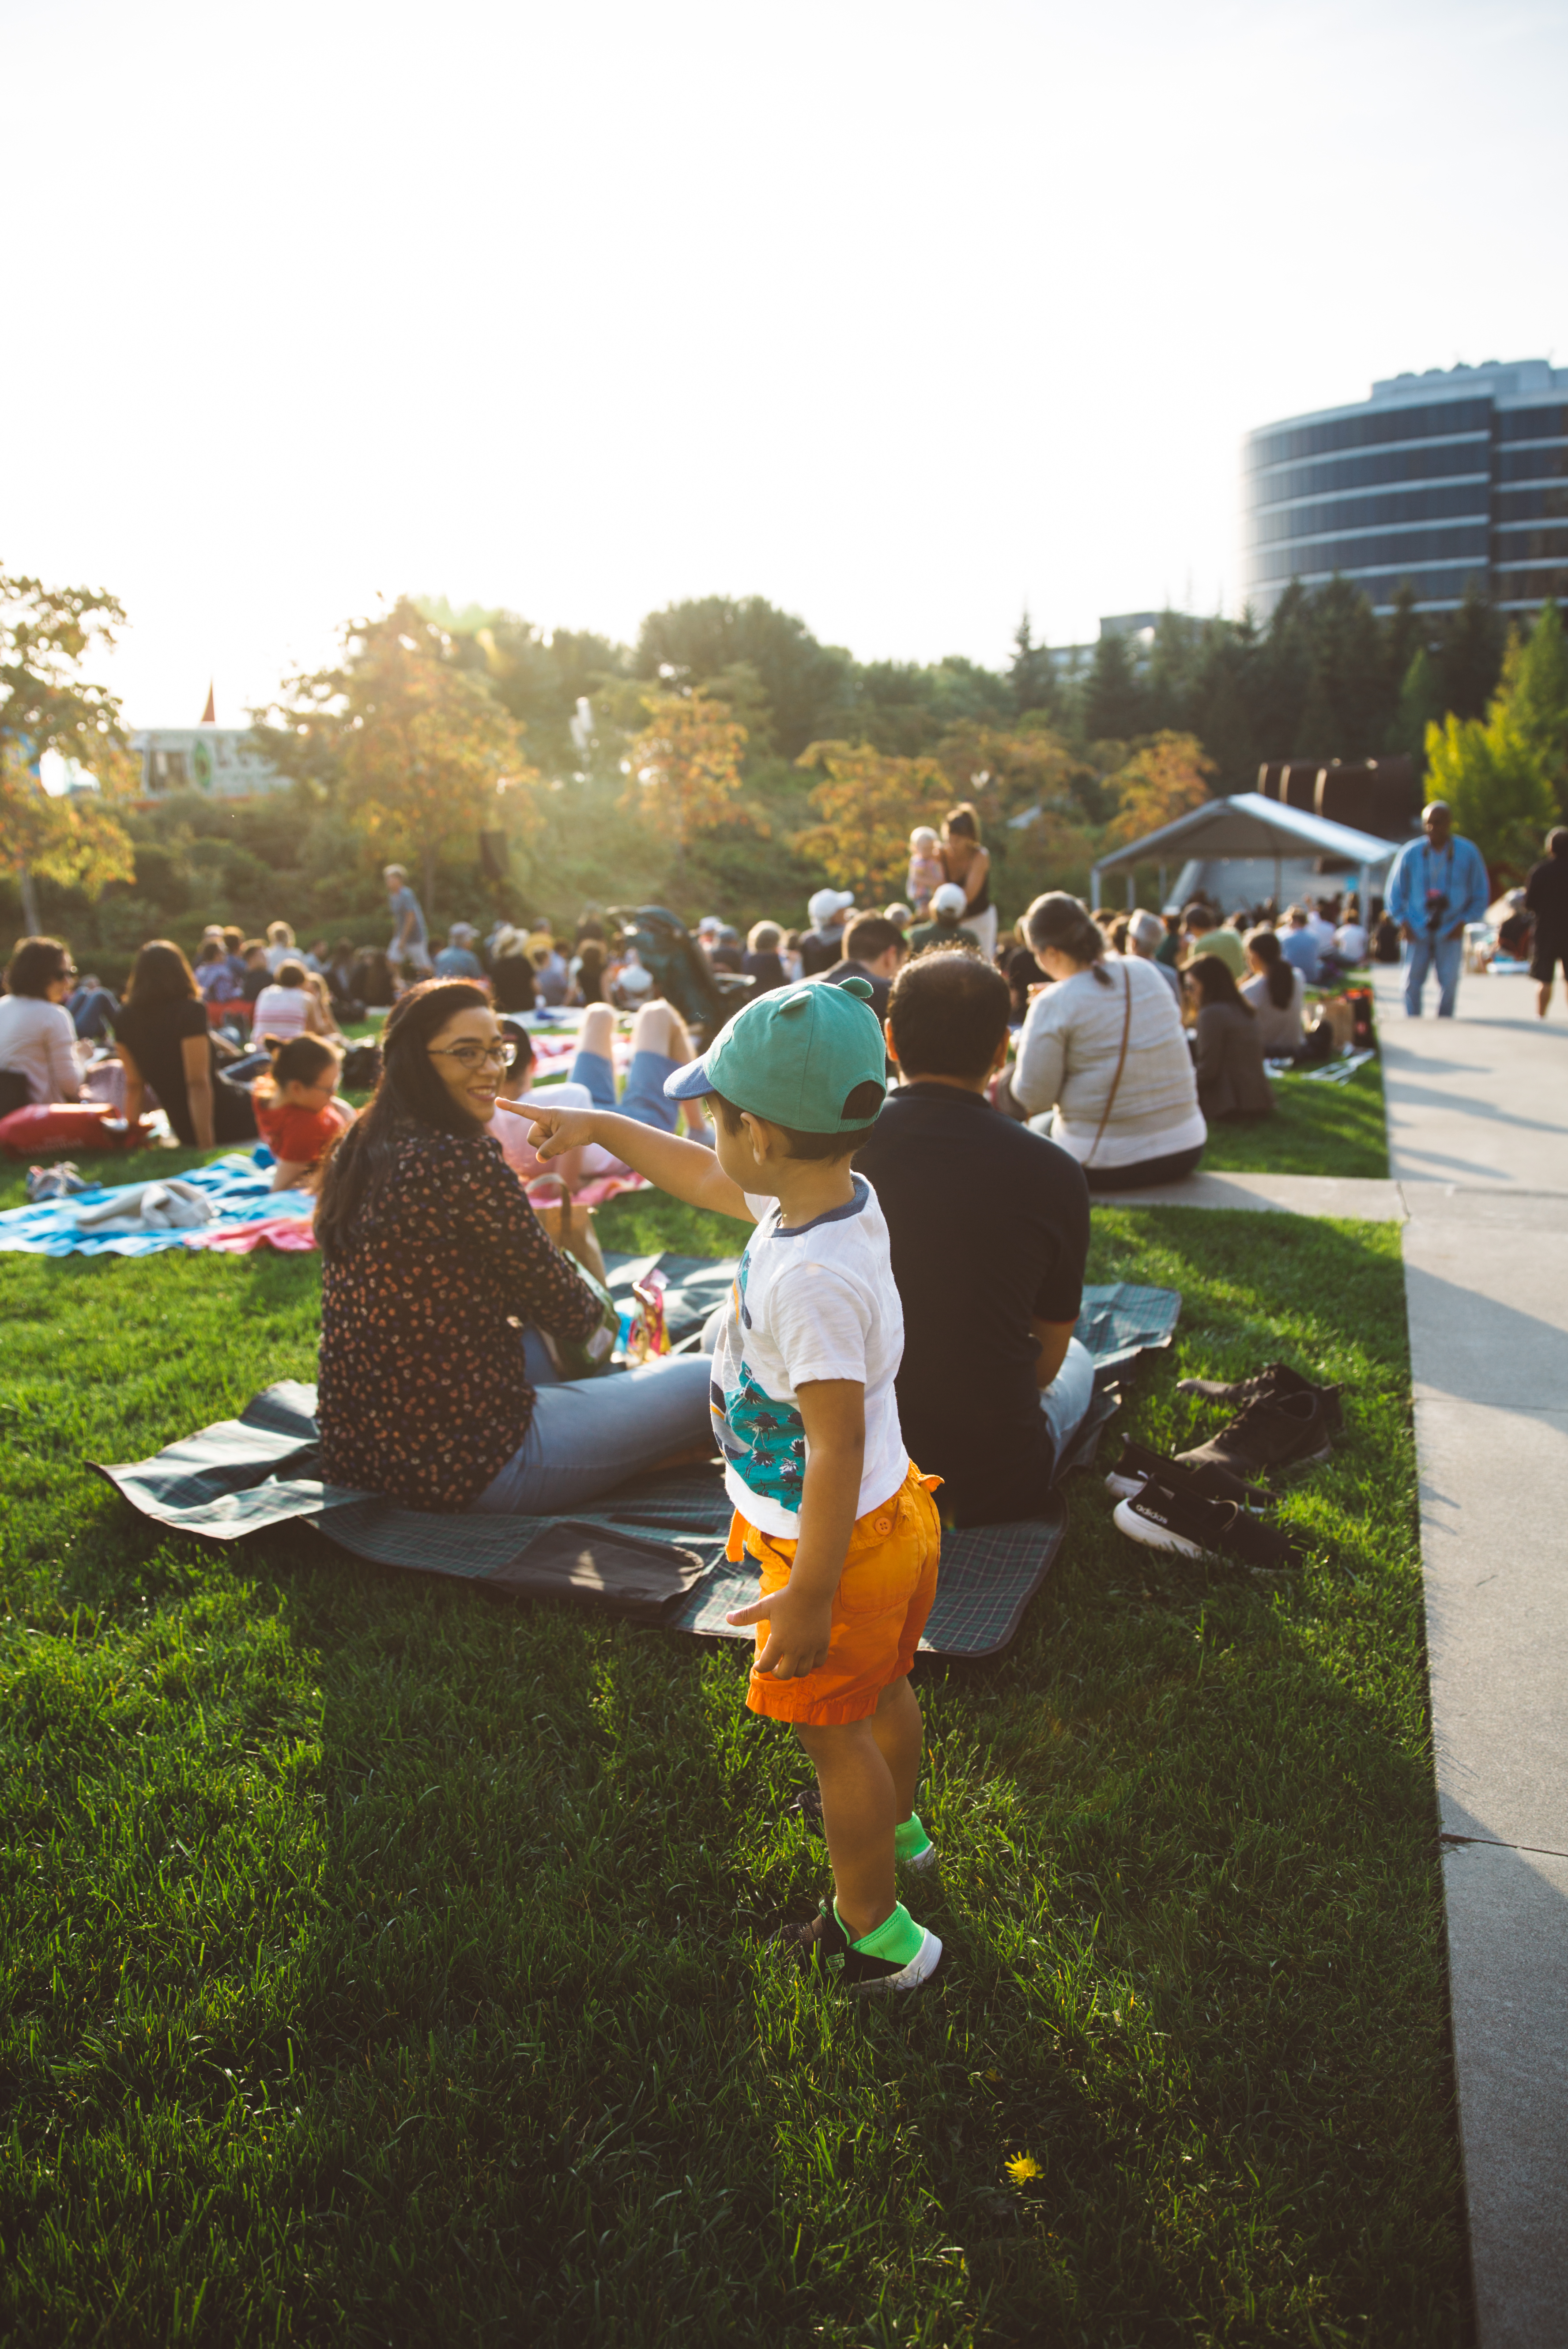 The smoke of the past couple days lifted just in time for 'Summer at SAM' to have a proper closing celebration, complete with arts, crafts, activities, food trucks, and a kids corner. (Image: Ryan McBoyle / Seattle Refined)